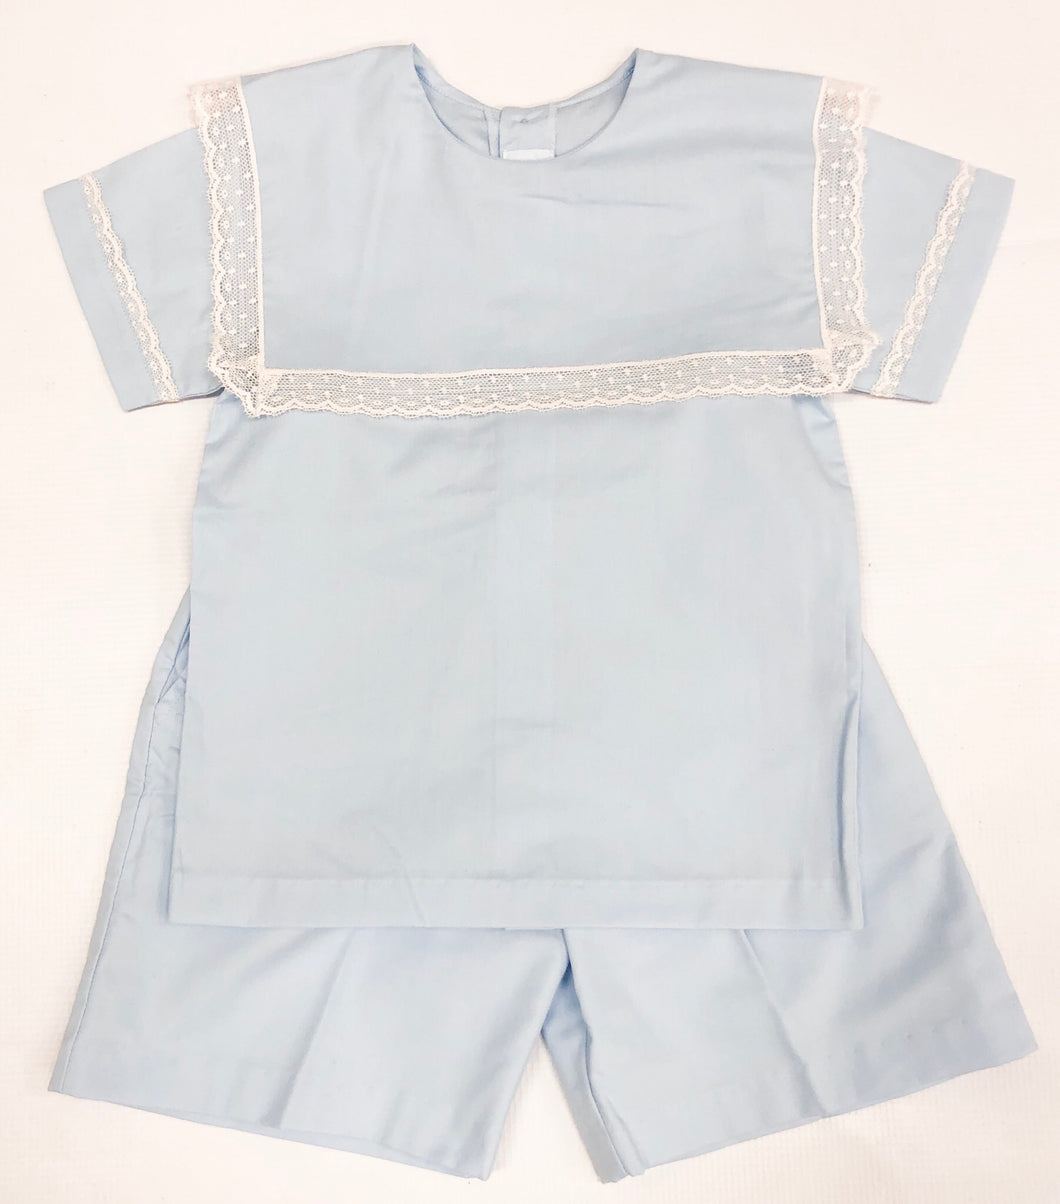 Blue w/ Ecru Lace Short Set